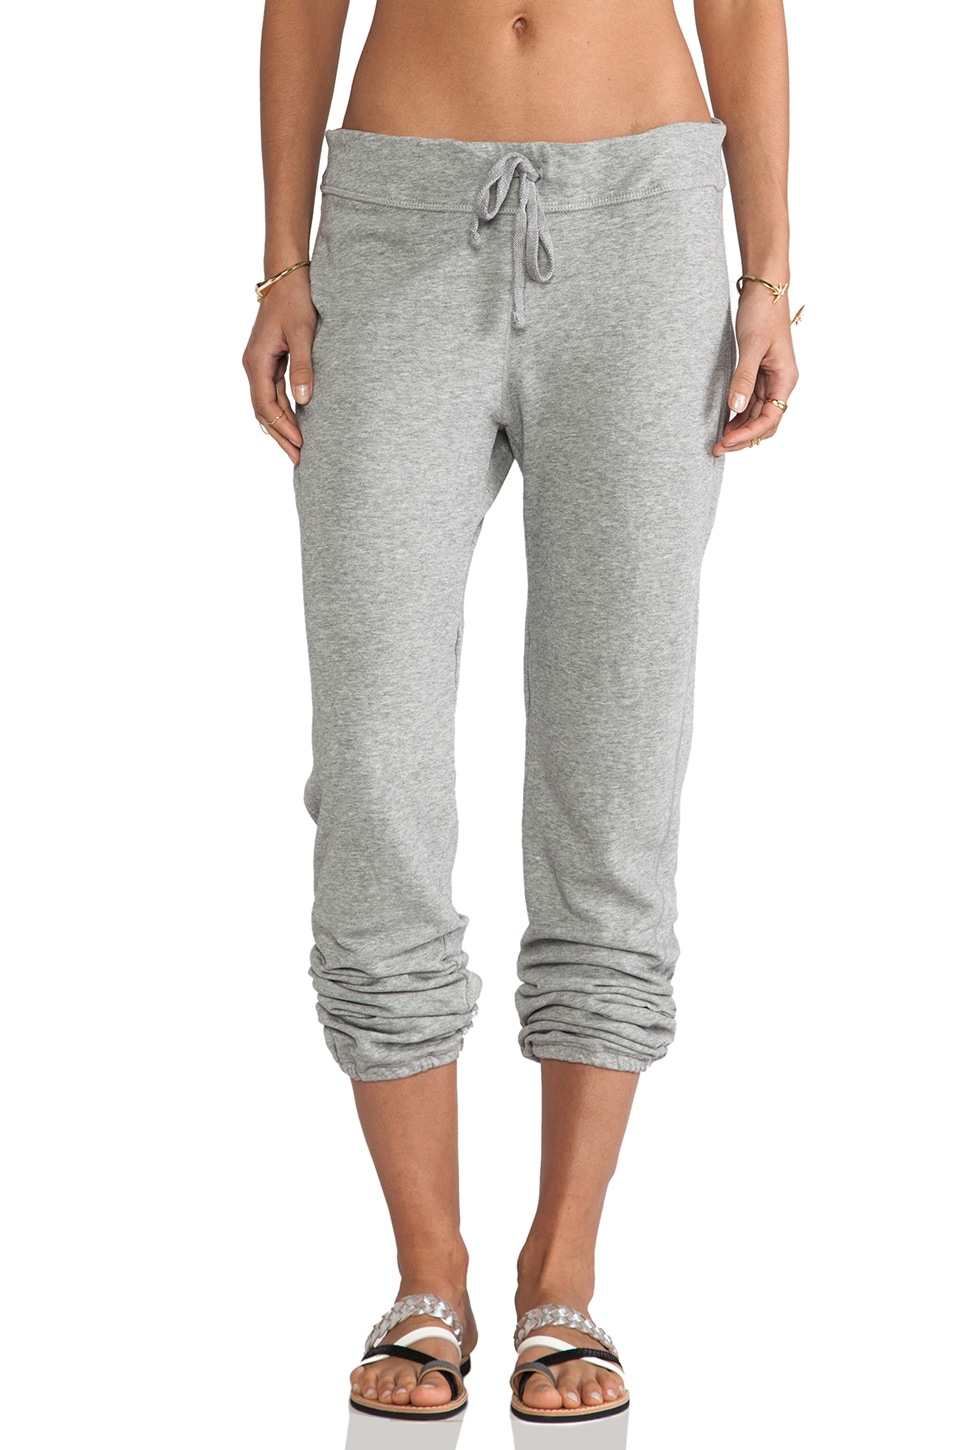 James Perse Vintage Cotton Genie Sweat Pant in Heather Grey